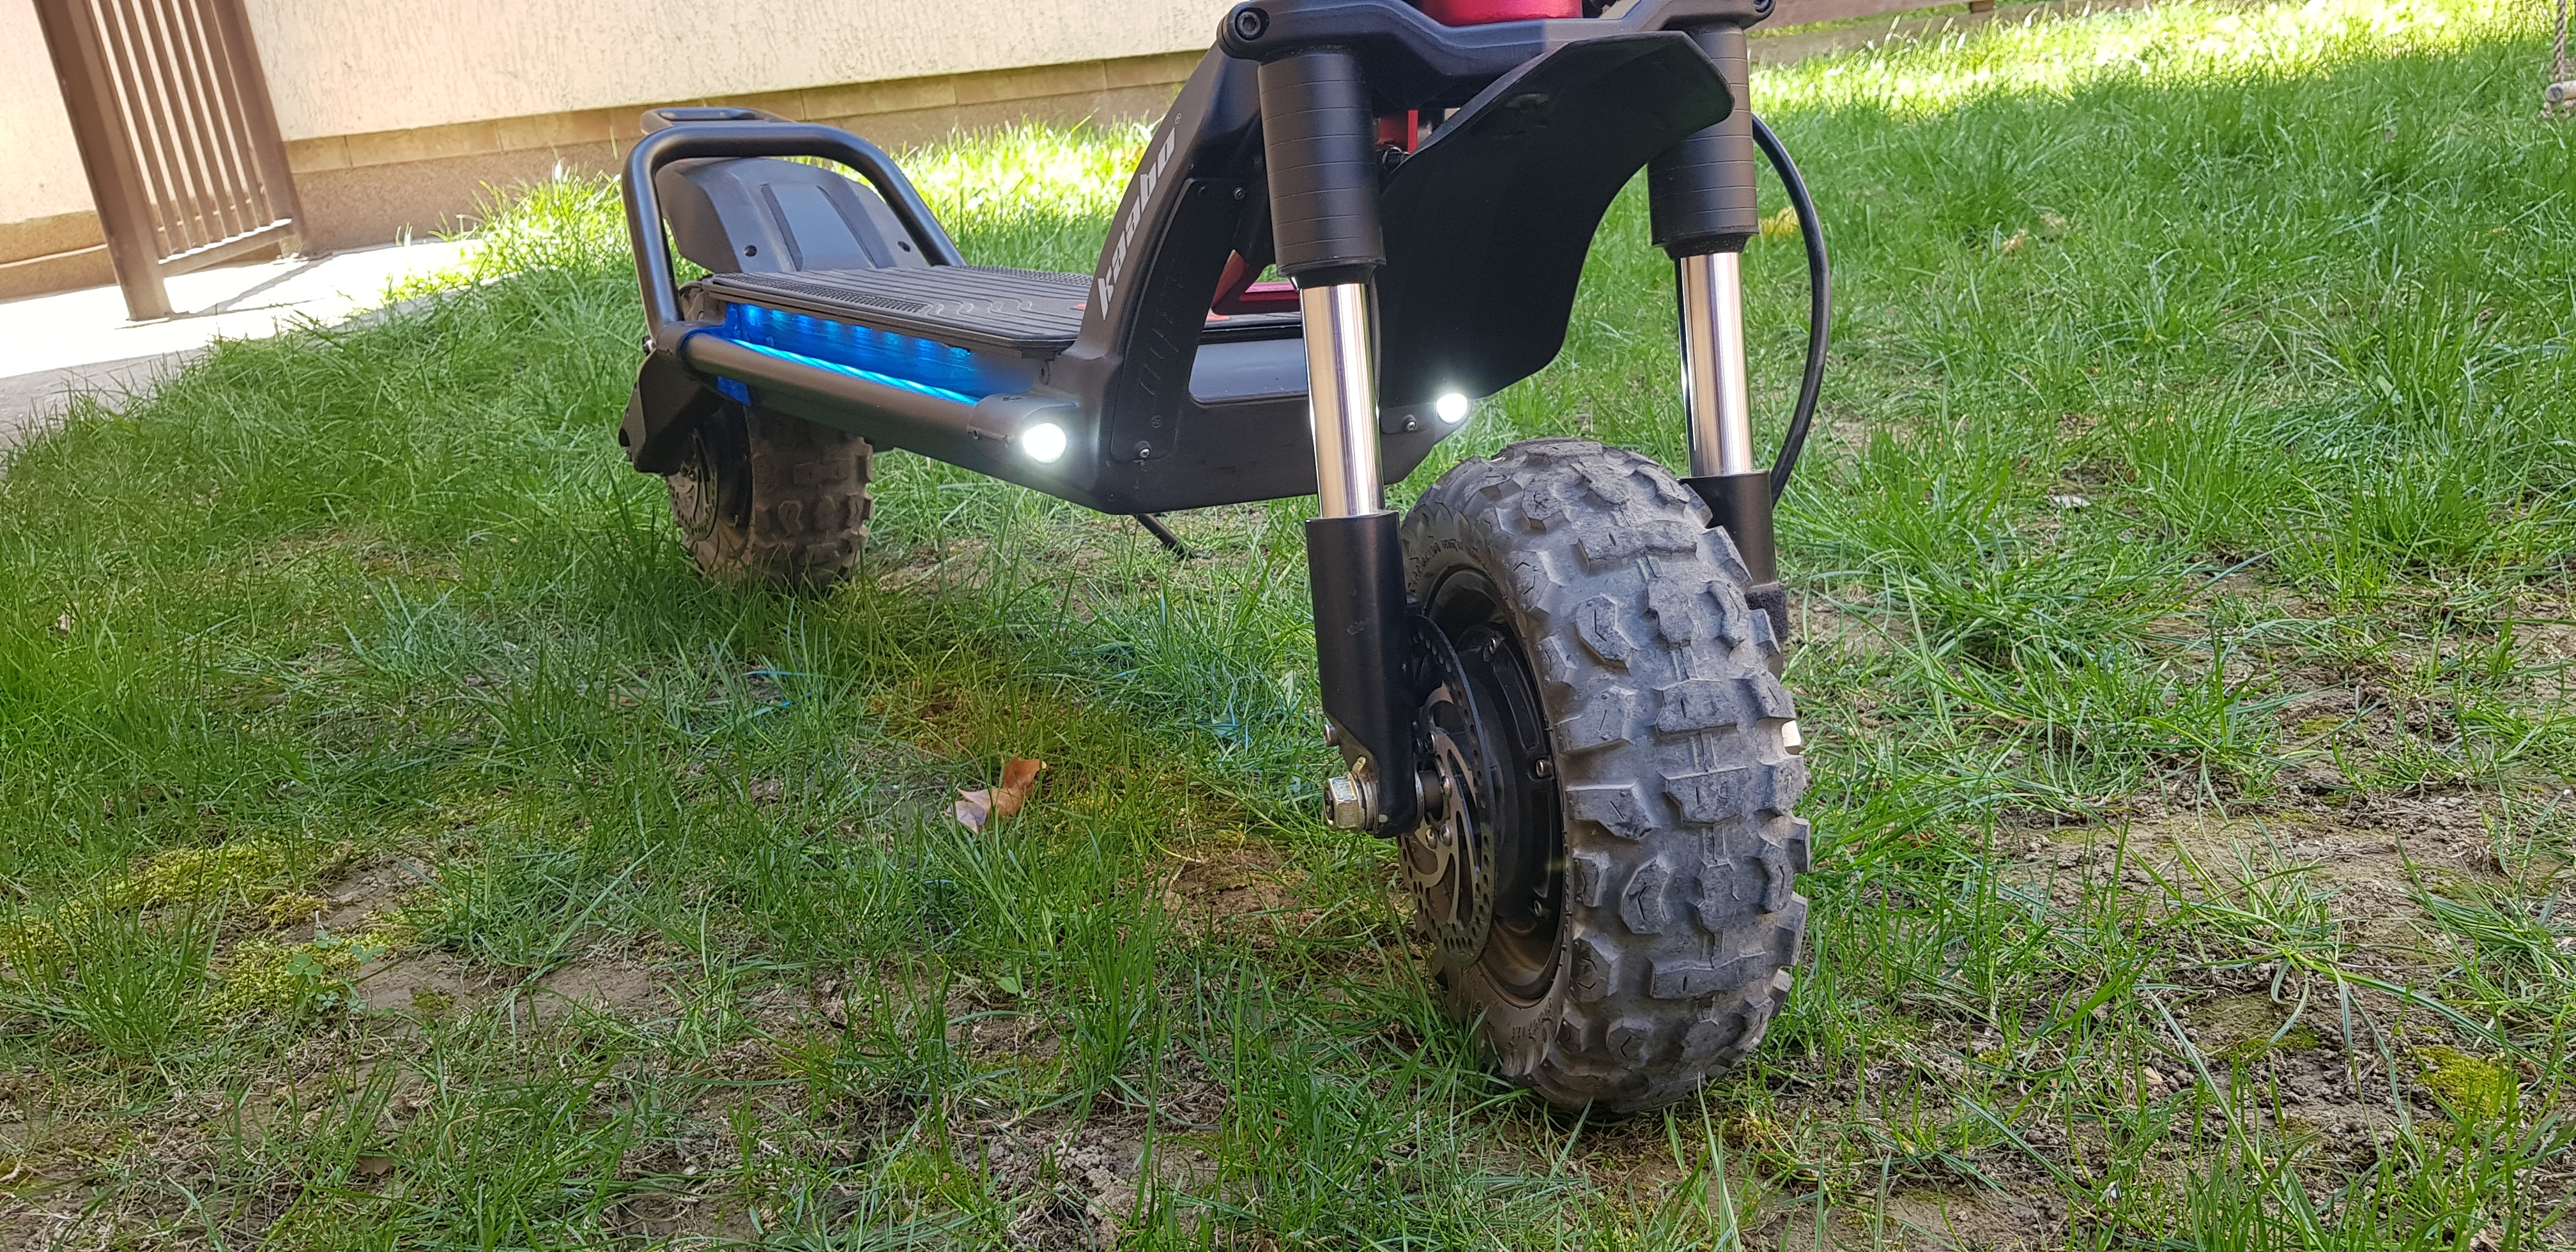 Kaabo Wolf Warrior II Review - New High-End Off-Road Scooter